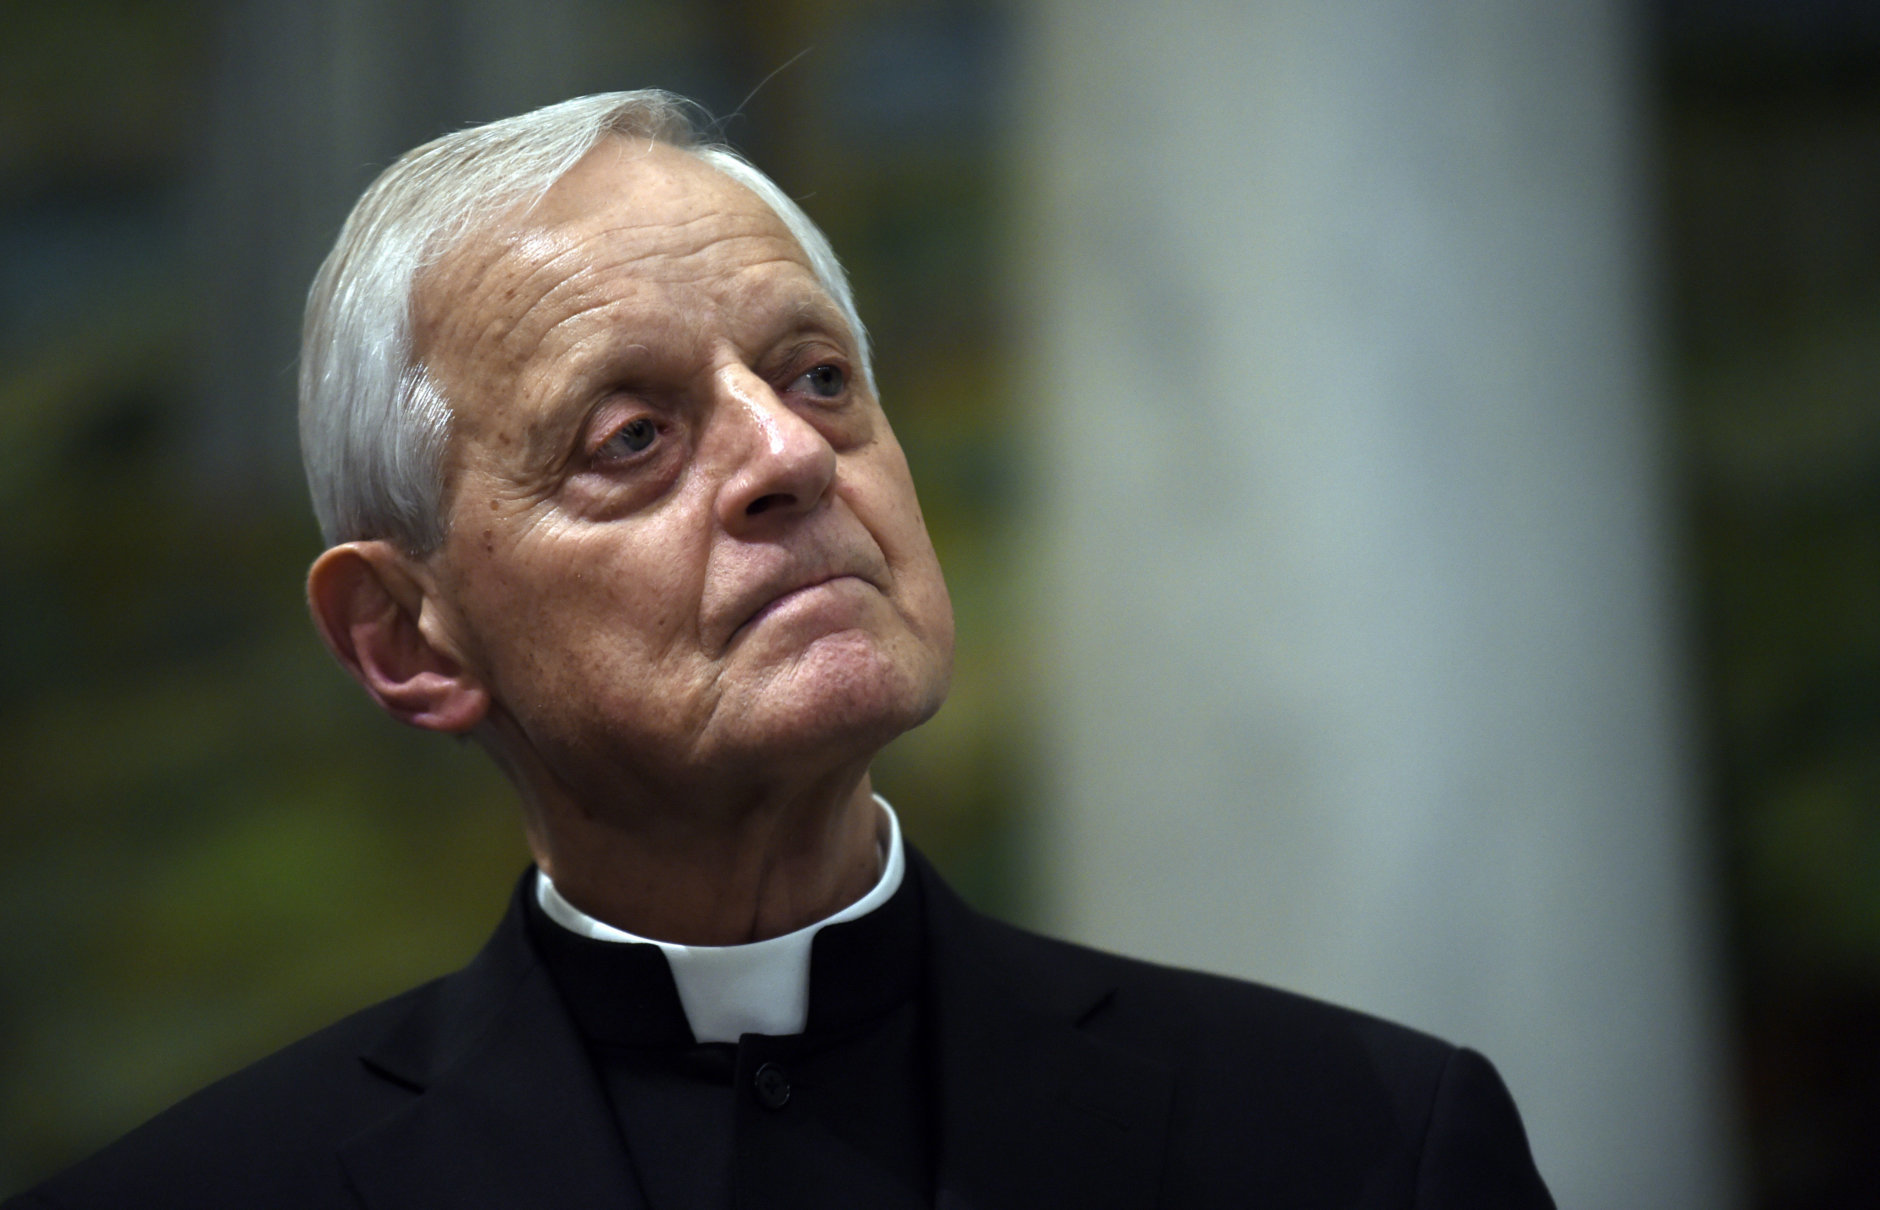 In 2015, Cardinal Donald Wuerl, archbishop of Washington, spoke at a news conference. On Oct. 12, 2018, the Vatican announced Pope Francis had accepted Wuerl's resignation. (File photo/Susan Walsh)